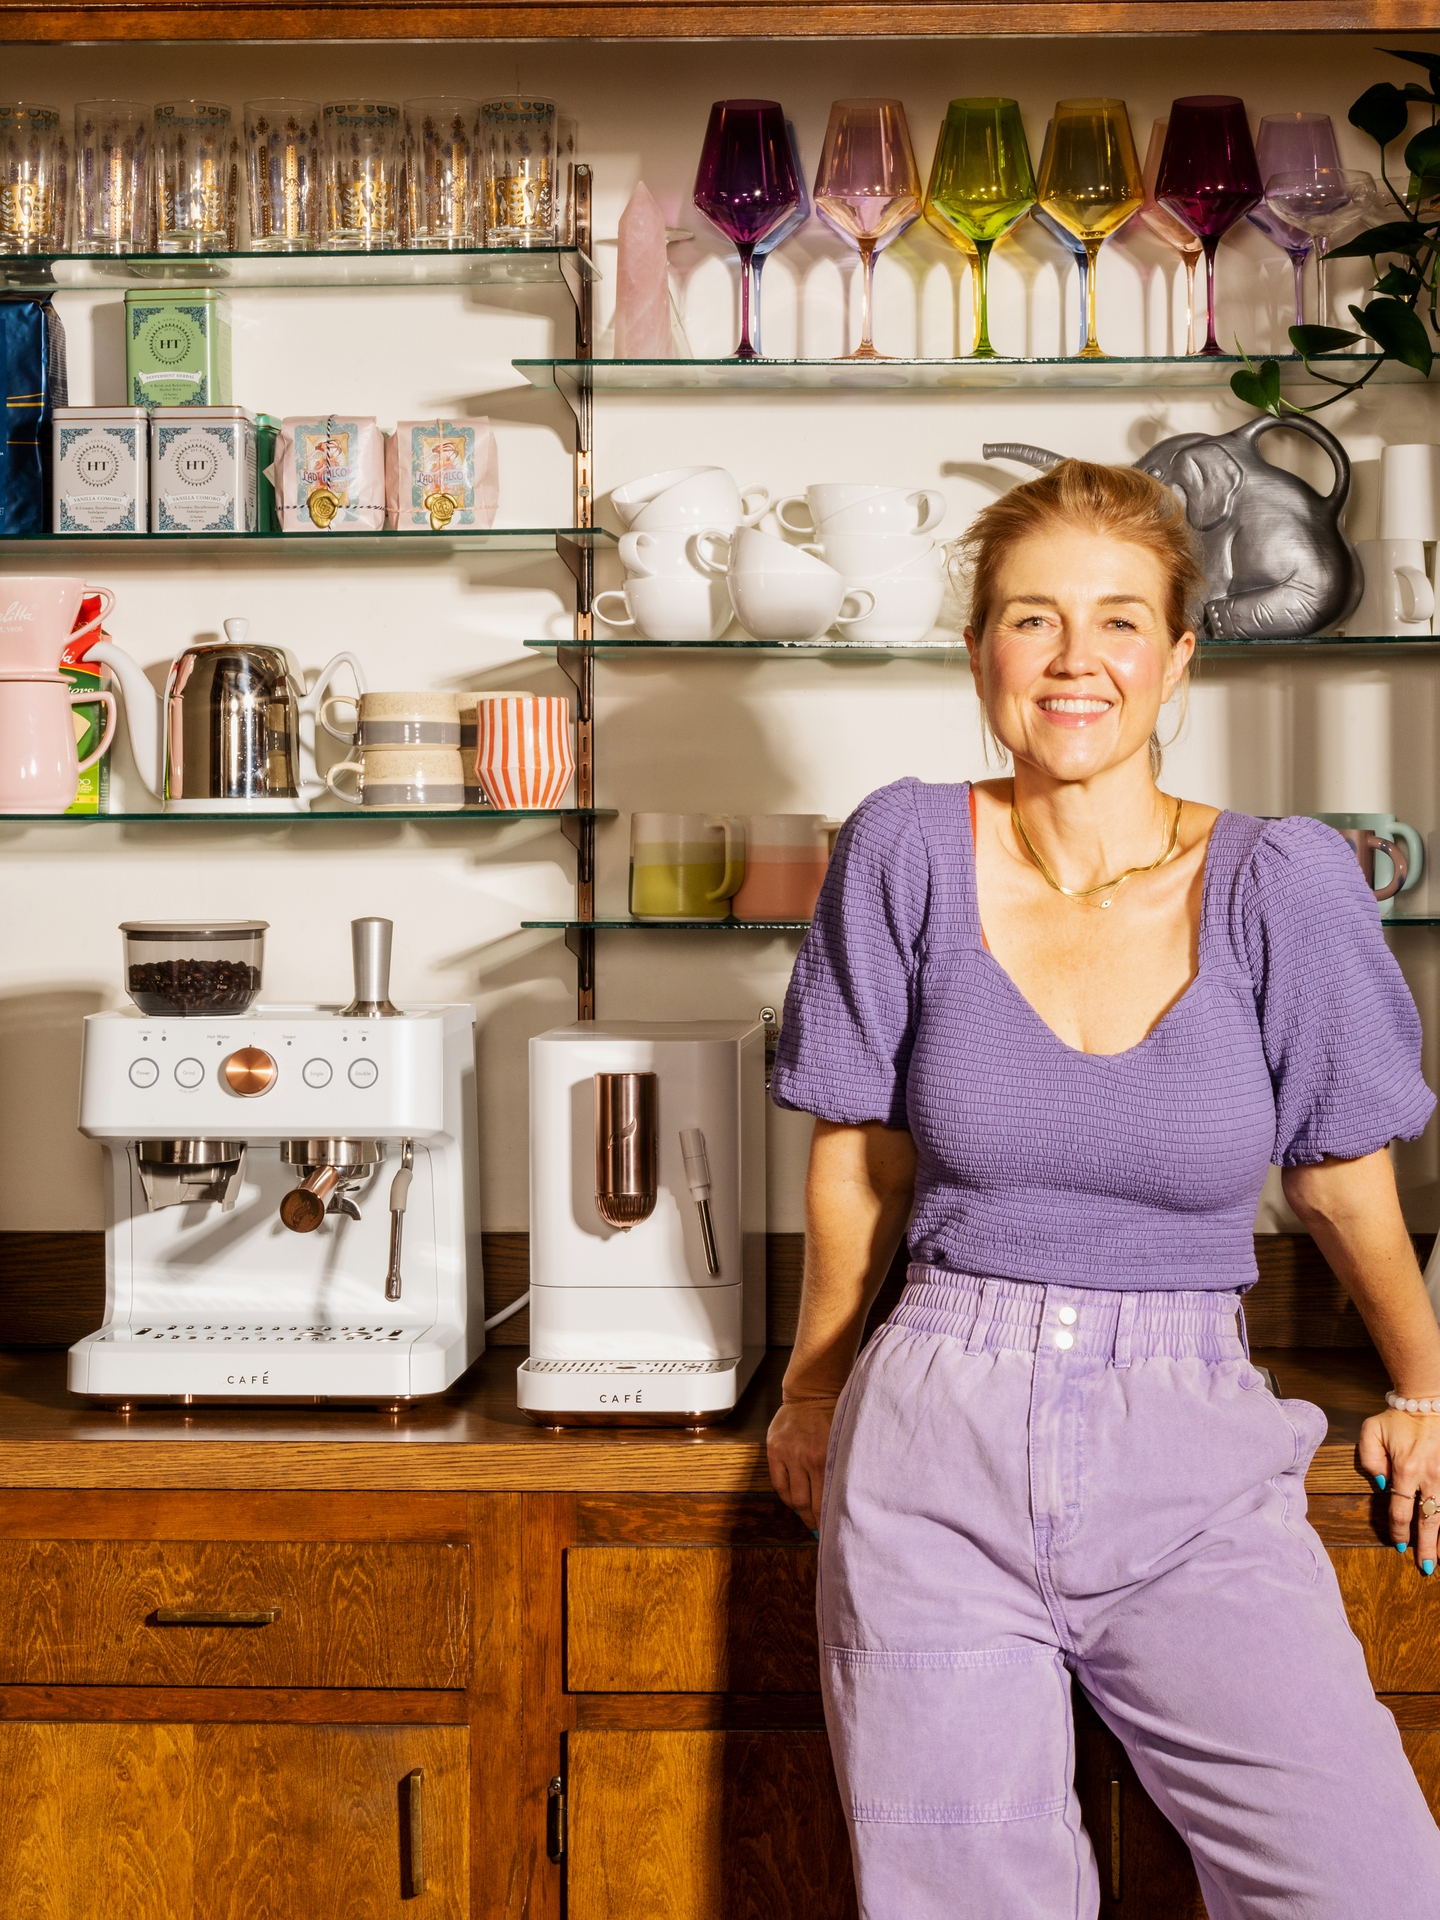 Jeni Britton, Founder and Chief Creative Officer of Jeni's Splendid Ice Cream, with Her At-Home Coffee Bar with new CAFÉ Espresso Makers